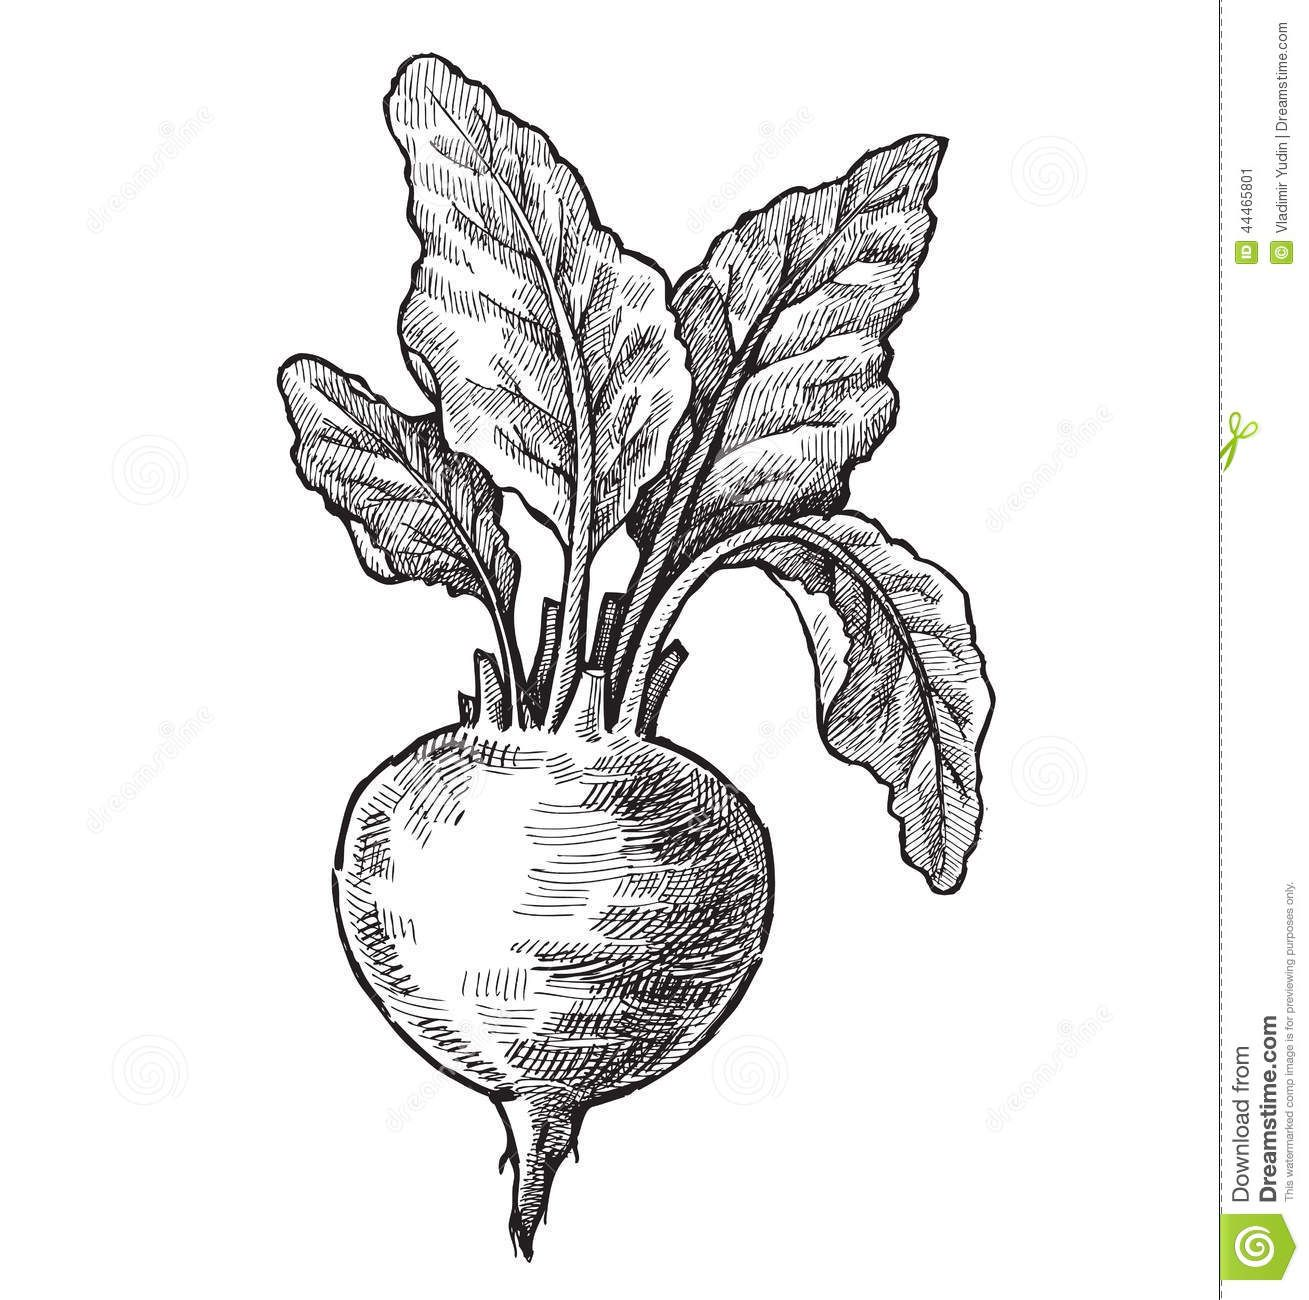 jpg transparent stock Beets drawing music. Black and white botanical